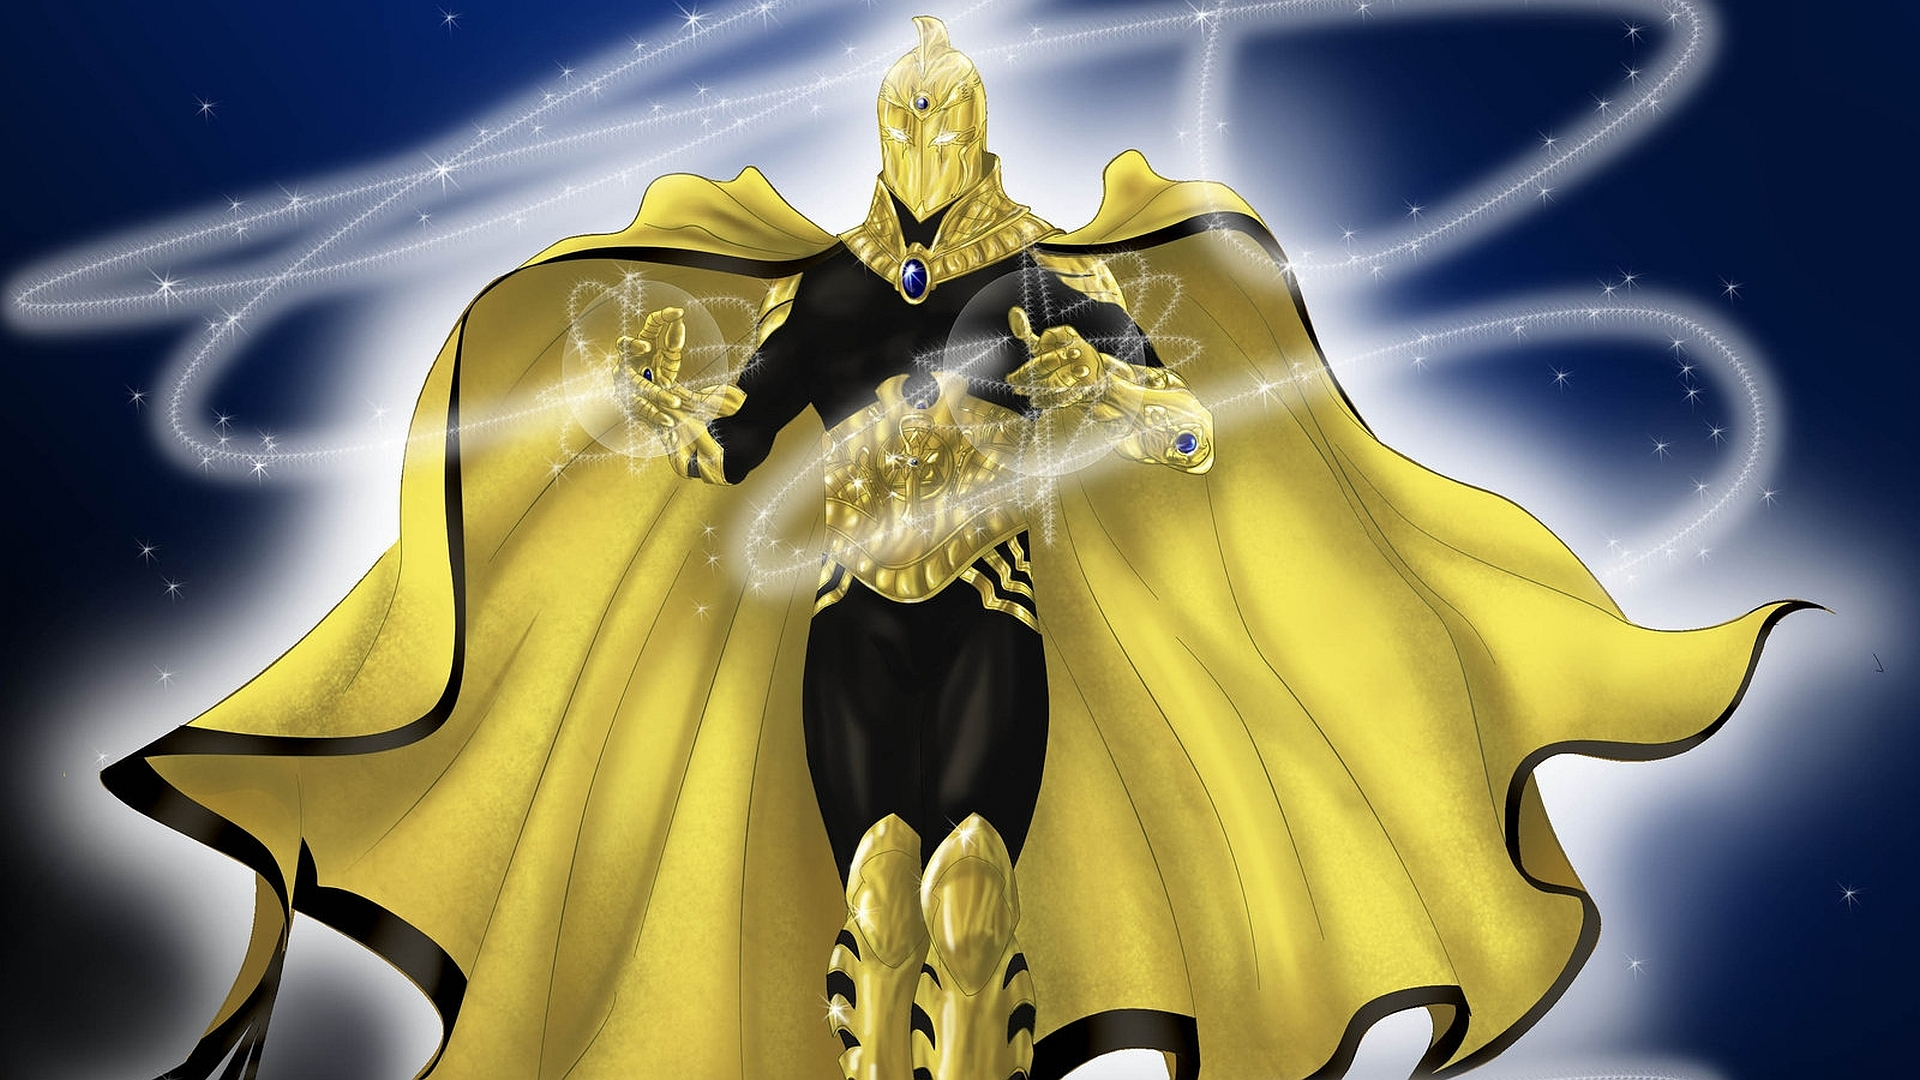 Cool Quotes Wallpapers For Desktop 5 Dr Fate Hd Wallpapers Backgrounds Wallpaper Abyss